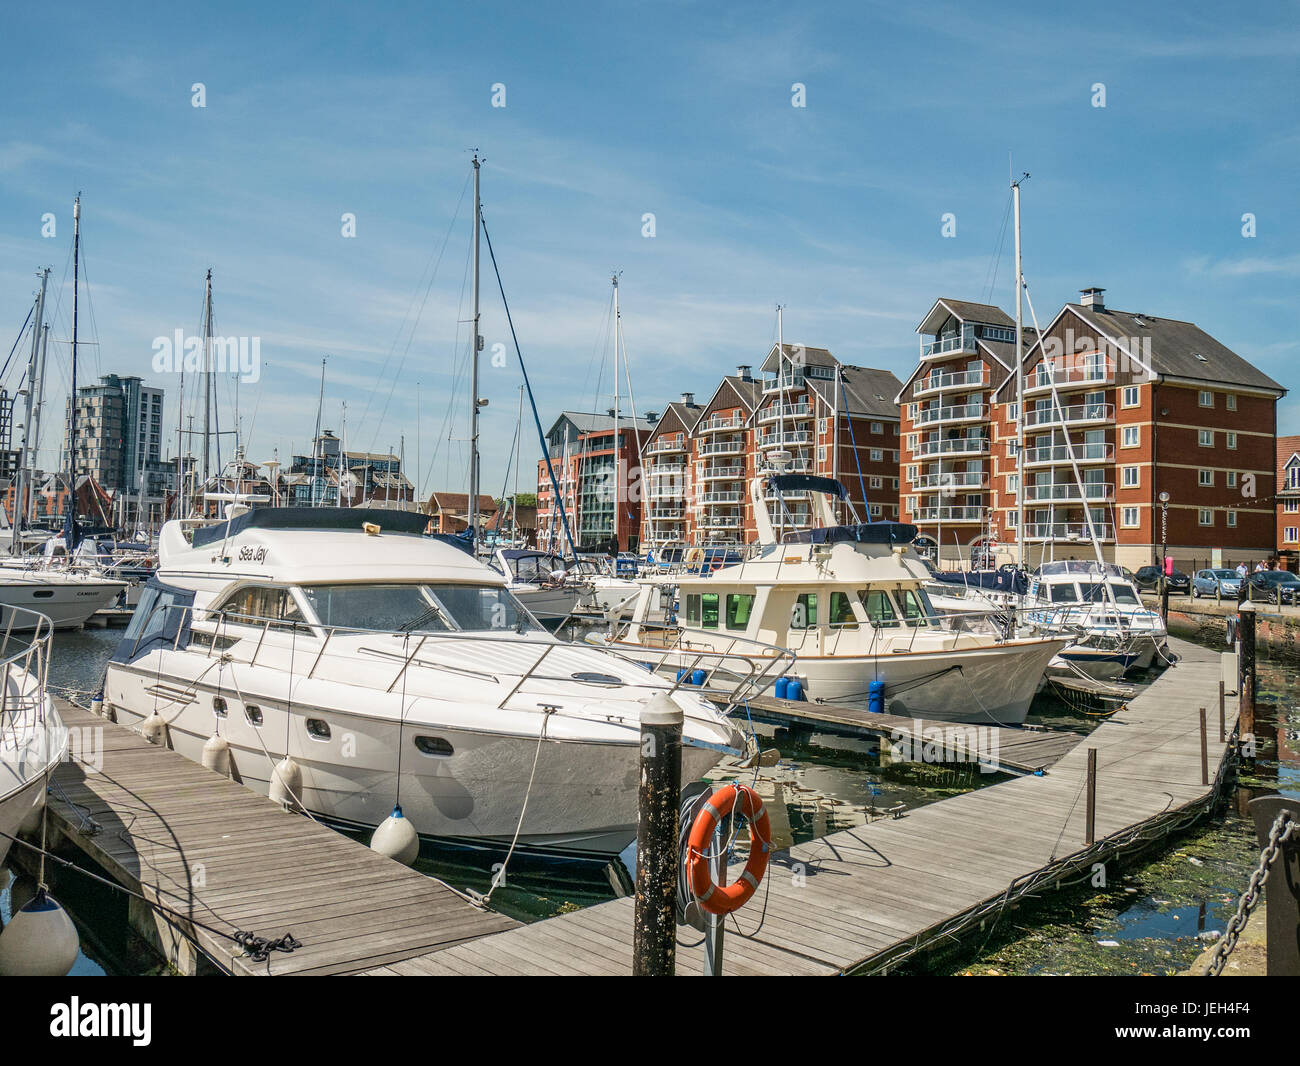 Ipswich Suffolk UK Marina with Residential Apartments Motor Cruisers and Yachts Moored - Stock Image